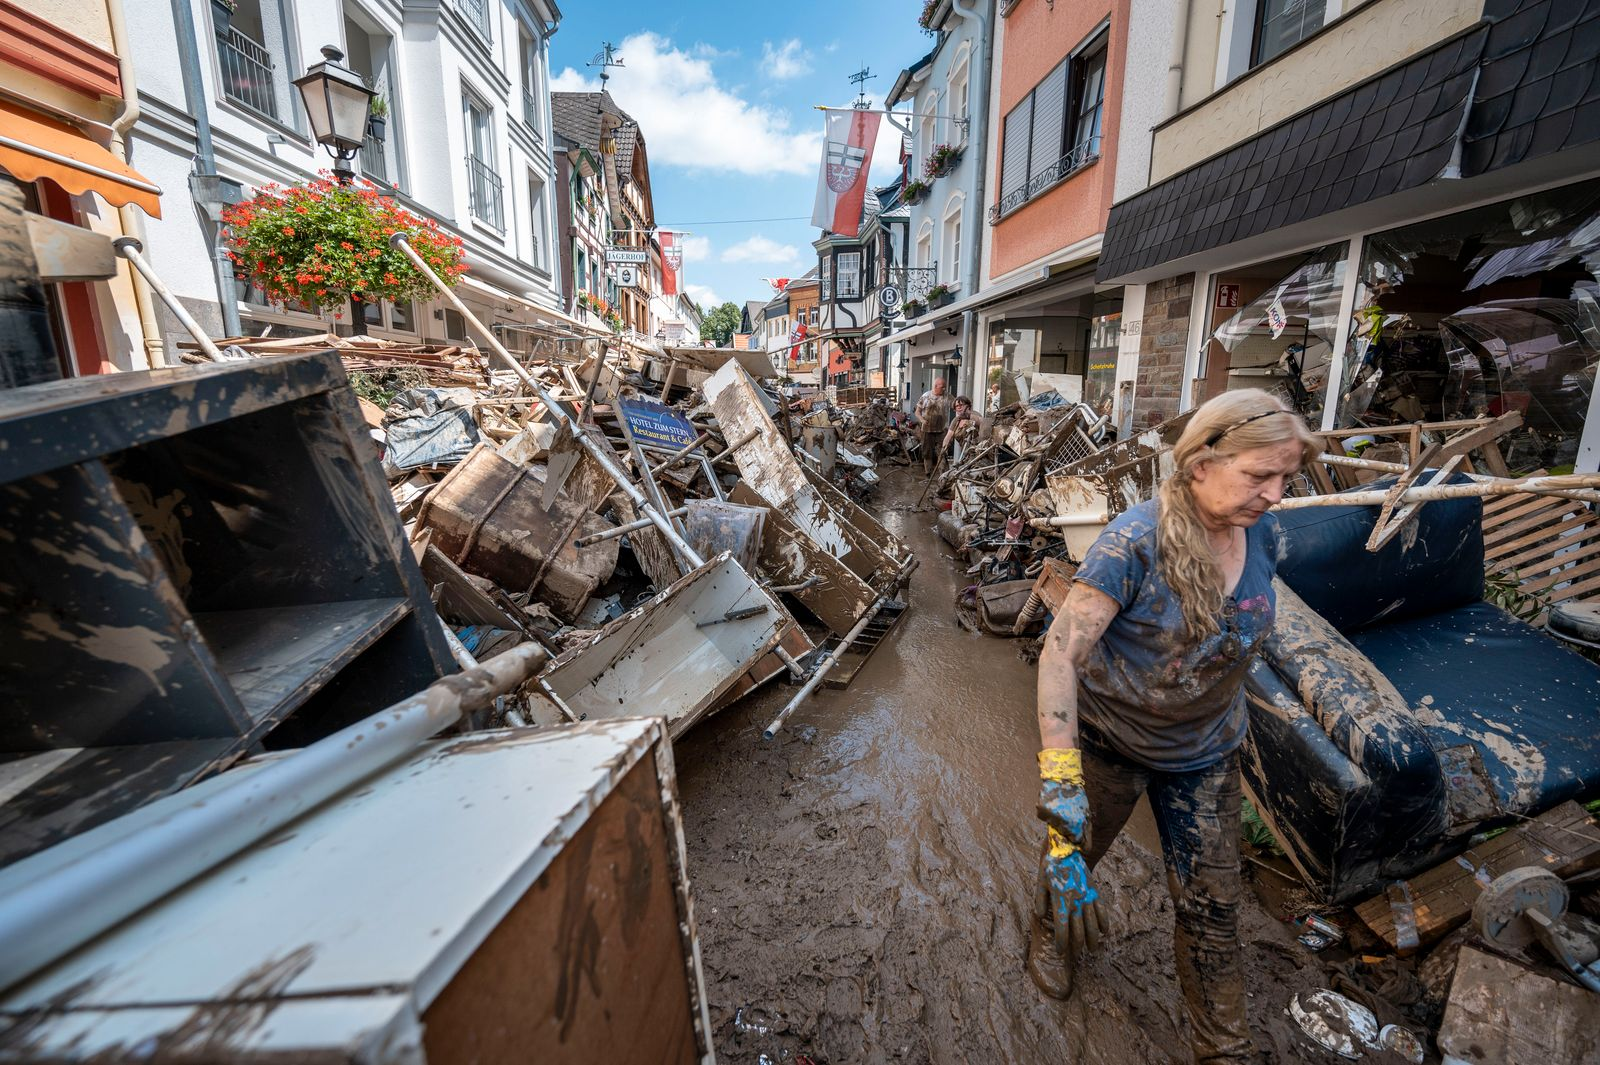 *** BESTPIX *** Germany Continues Evacuation And Rescue From Floods As Death Toll Rises